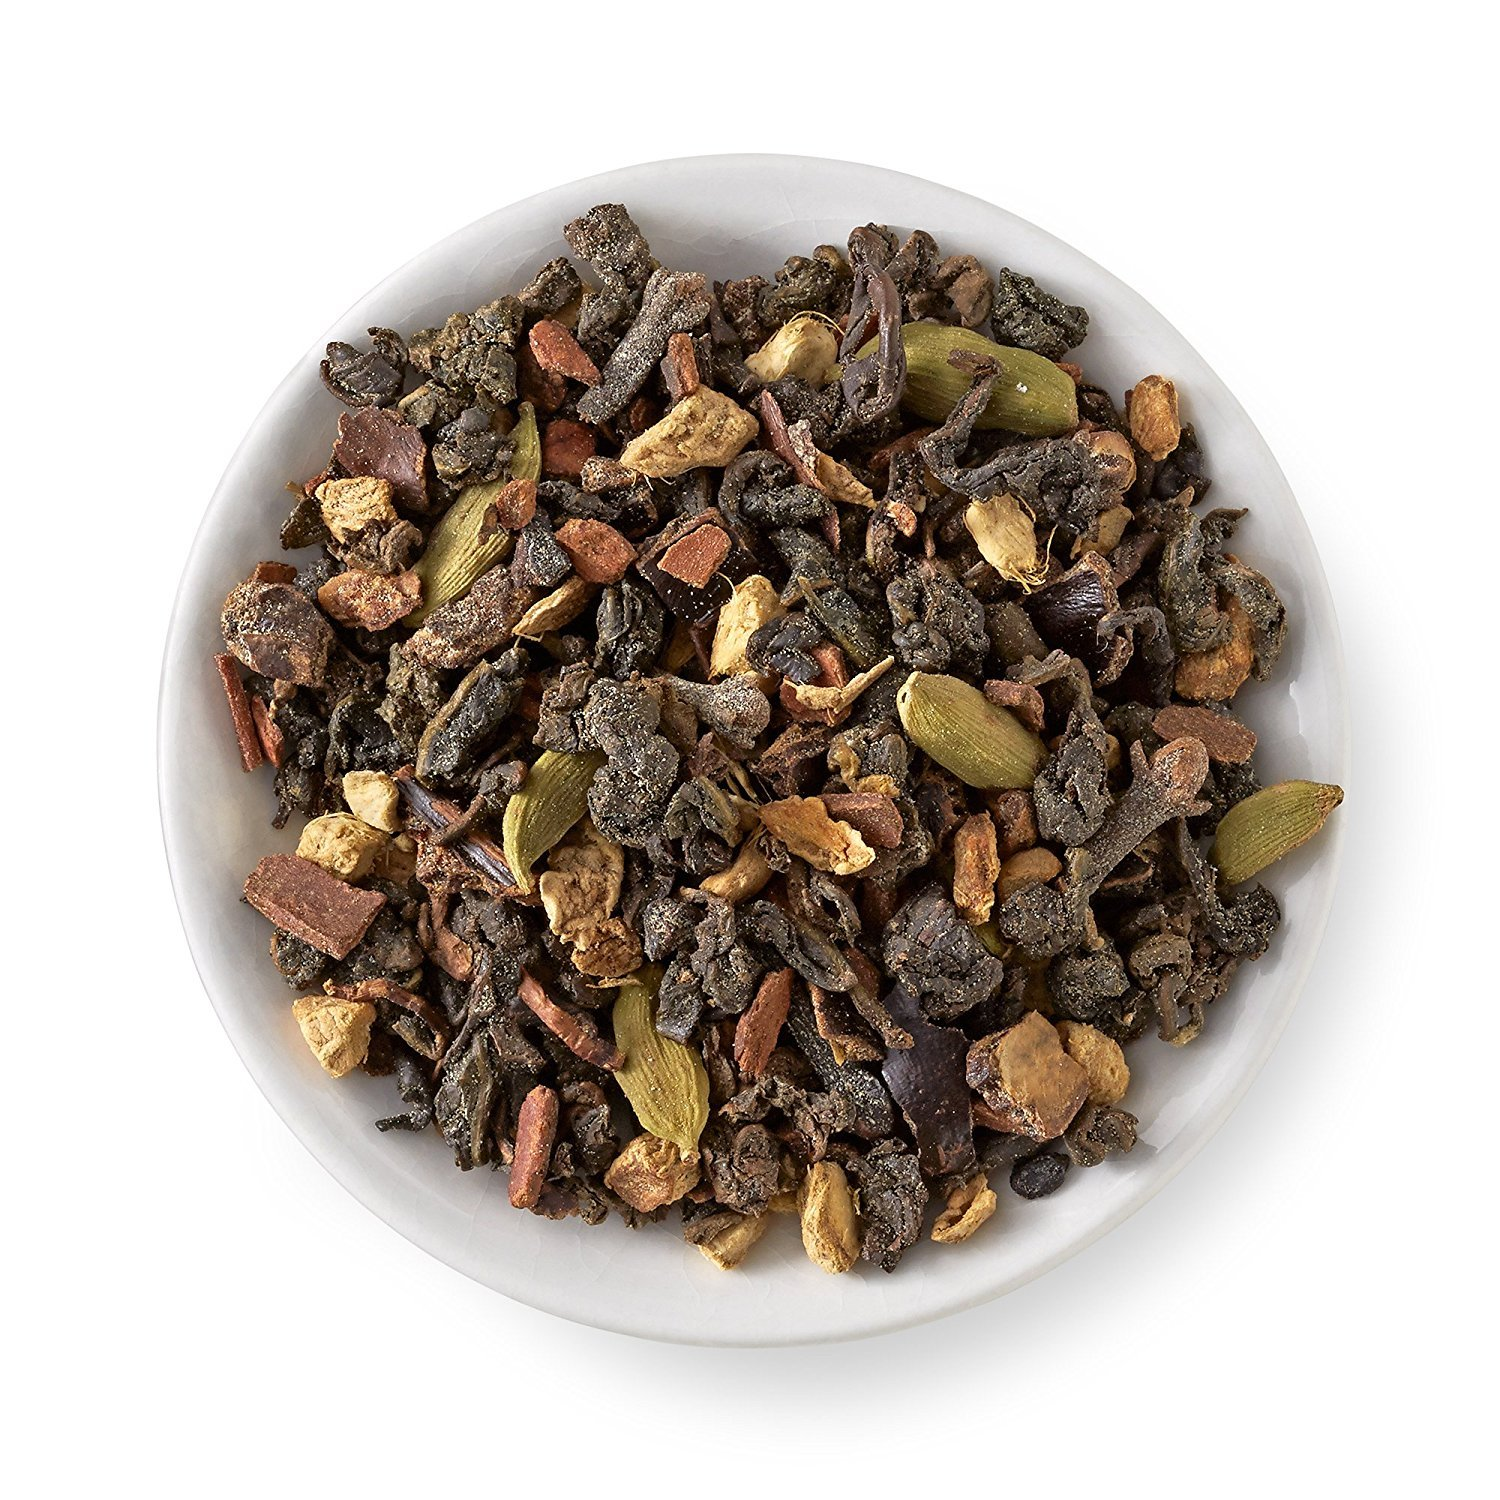 Teavana Maharaja Chai Loose-Leaf Oolong Tea (4oz Bag)